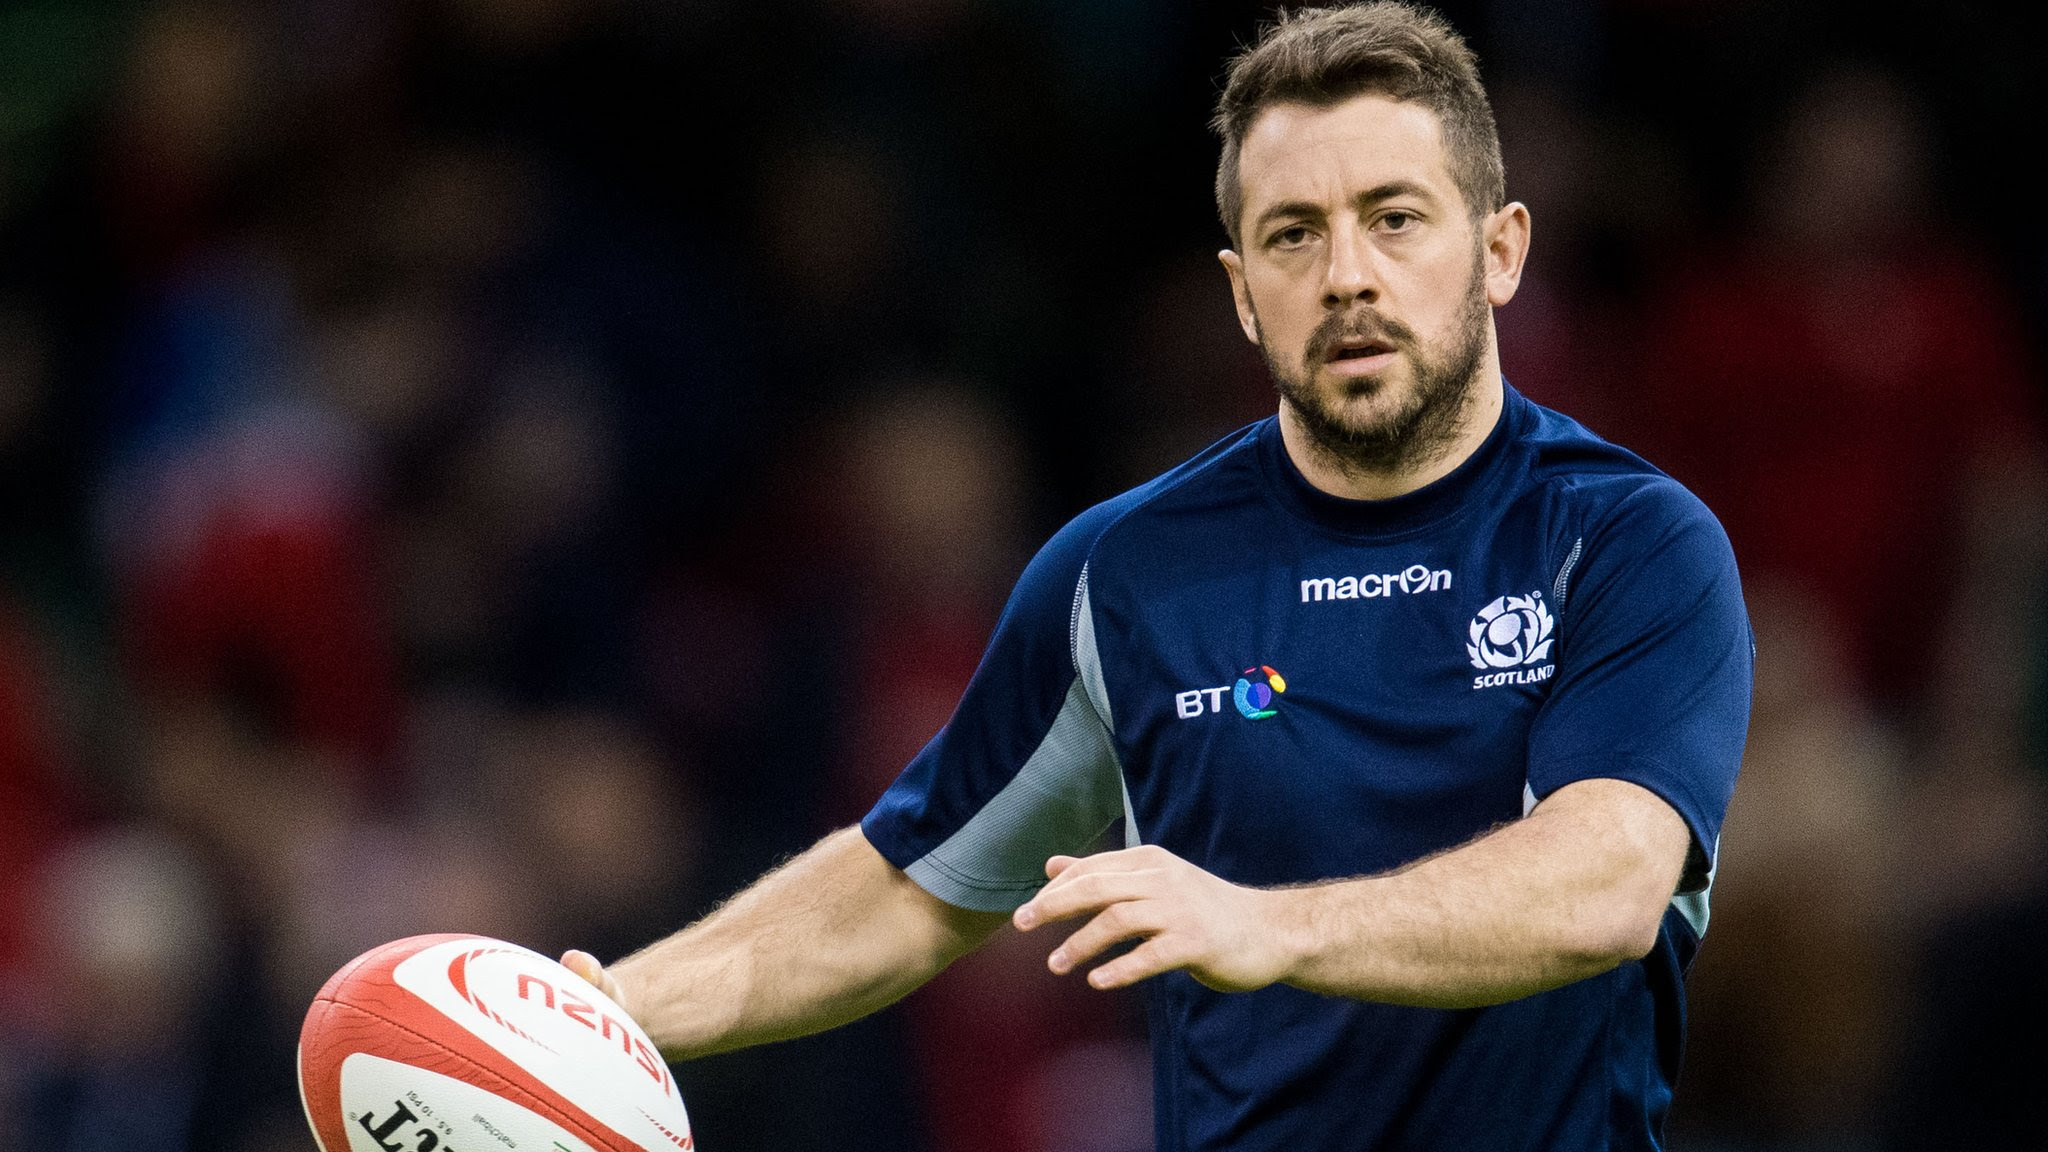 Greig Laidlaw: Scotland can win Six Nations 'in next two or three years'